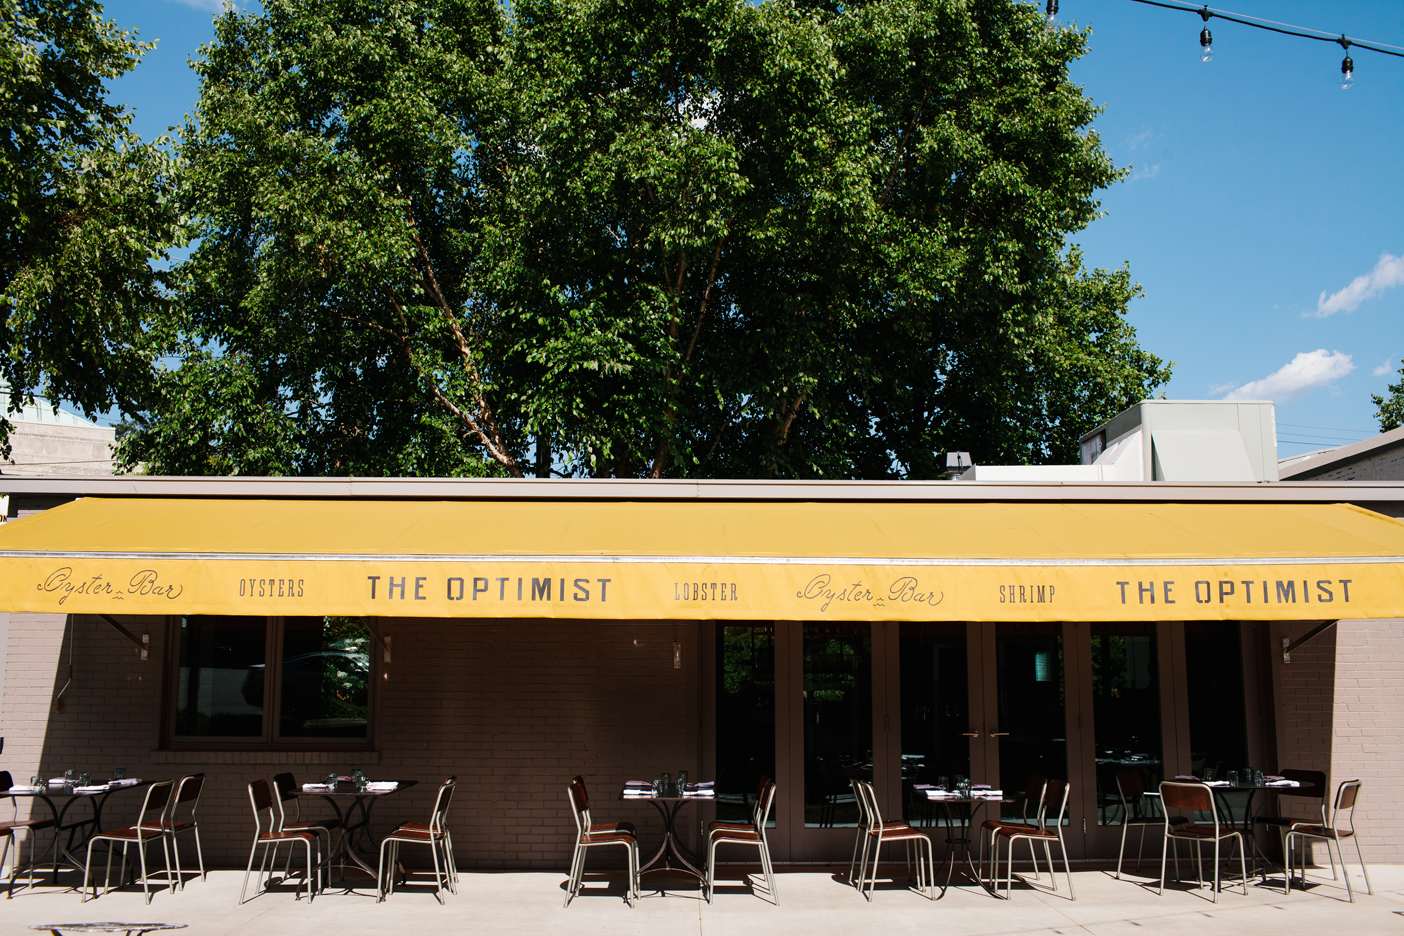 The Oyster bar at The Optimist | Smith Hanes. exterior